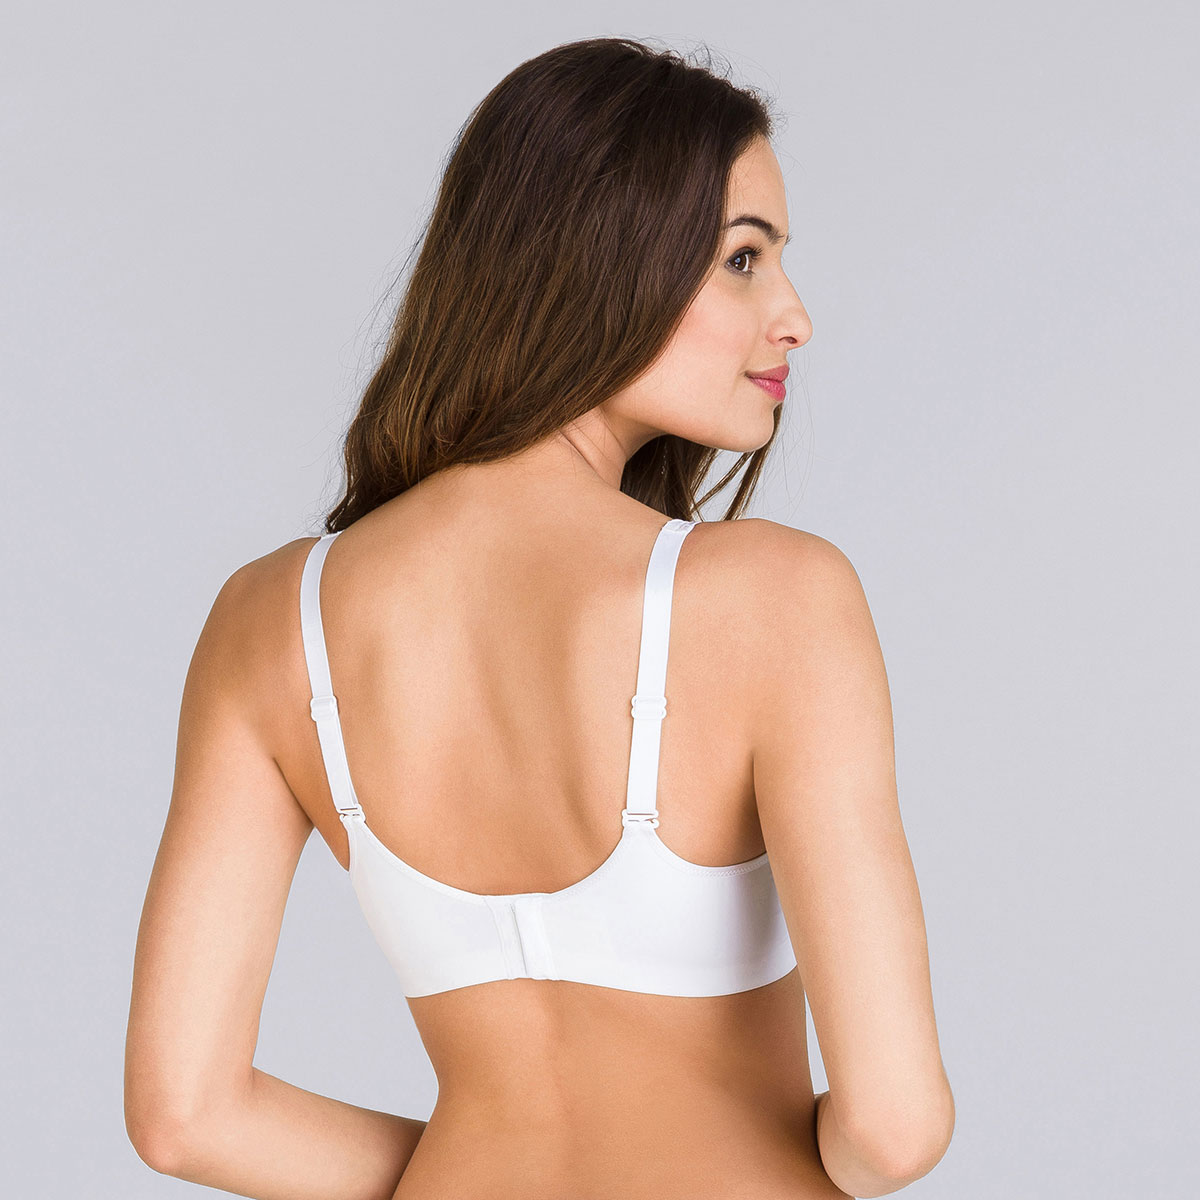 Reggiseno senza ferretto bianco - Feel Good Support -PLAYTEX